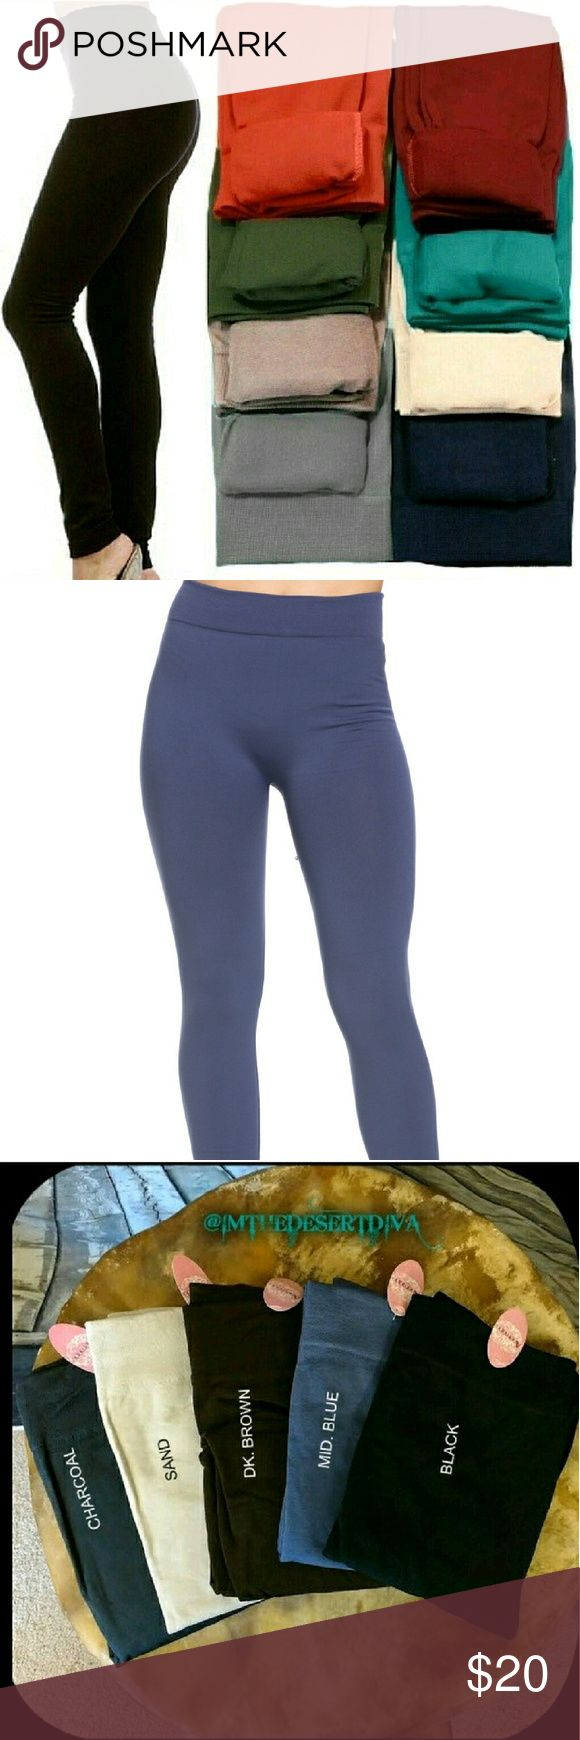 SALE!MID. BLUE Fleece Lined Leggings ONE SIZE FITS MOST(best fits S, M, L )  Super soft, very stretchy and stylish fleece leggings \ footless tights. Looks like a regular sleek legging but inside is soft and cozy fleece that is warm and comfy. Warmth and style without bulkiness. 65% Polyester, 20% Cotton, 15% Spandex.  Available in other listings: BLACK, CHARCOAL, DK. BROWN, WINE & SAND.  Price Firm Unless Bundled No Trades ✔️10% Discount on bundles of 2+ ✔️Gift with purchase of 3+ Leggings…